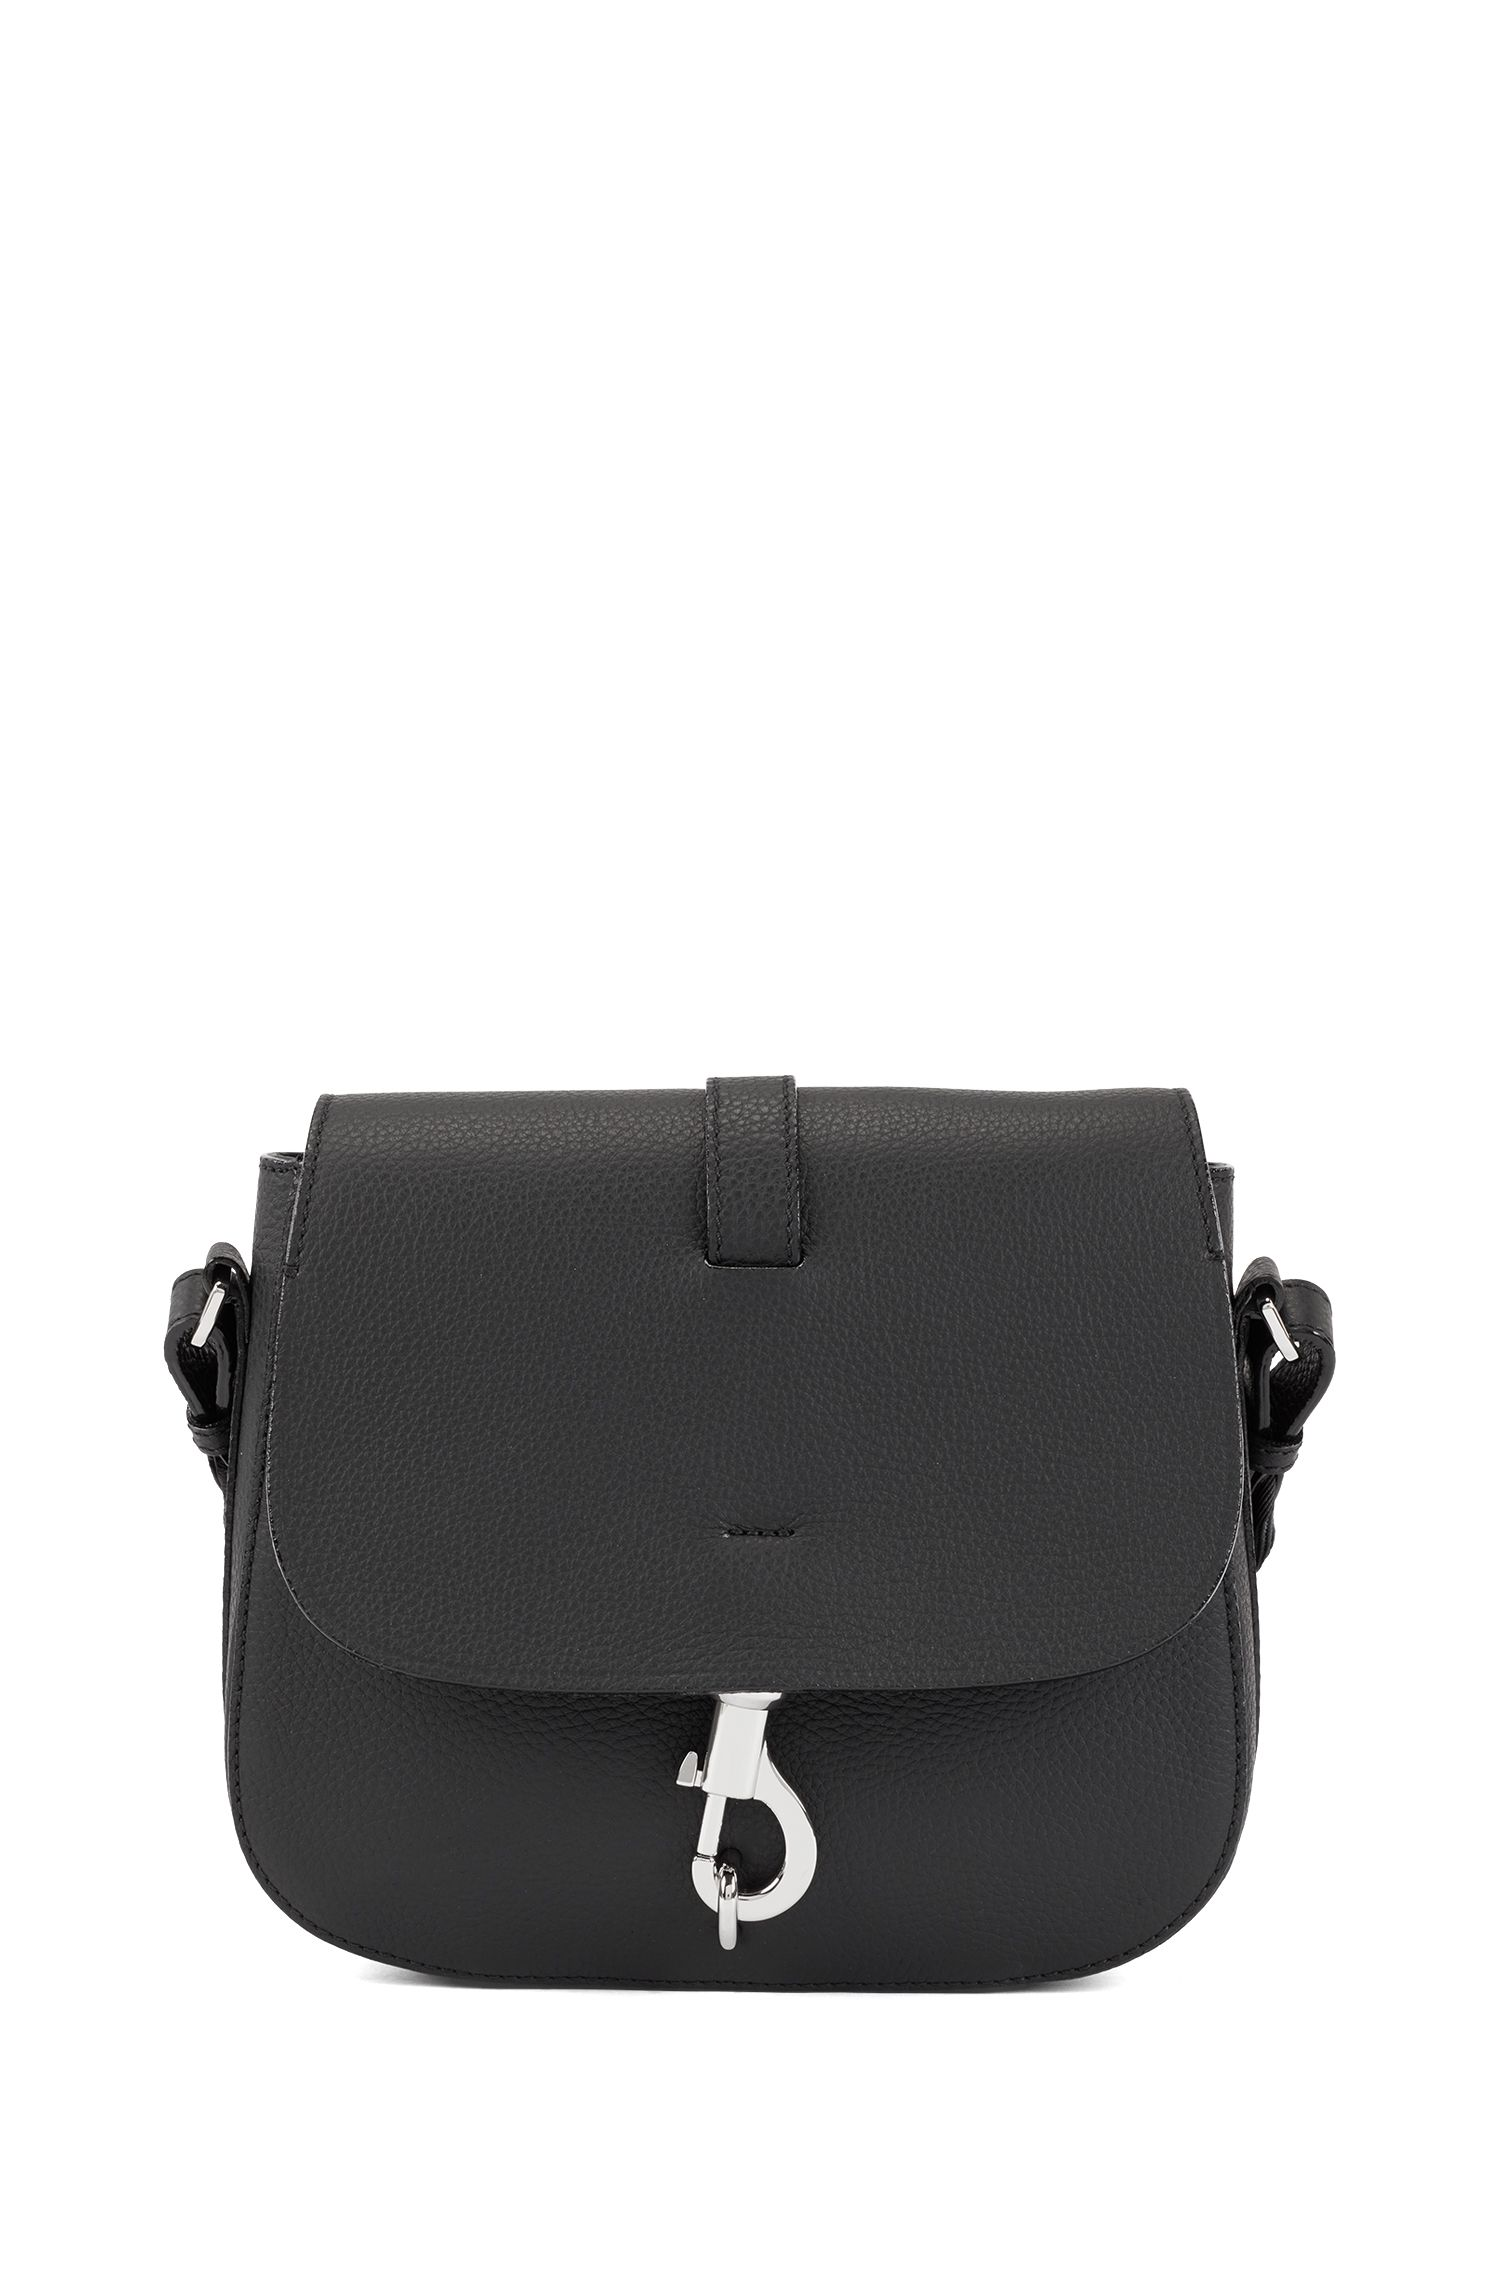 Cross-body saddle bag in grainy Italian leather, Black